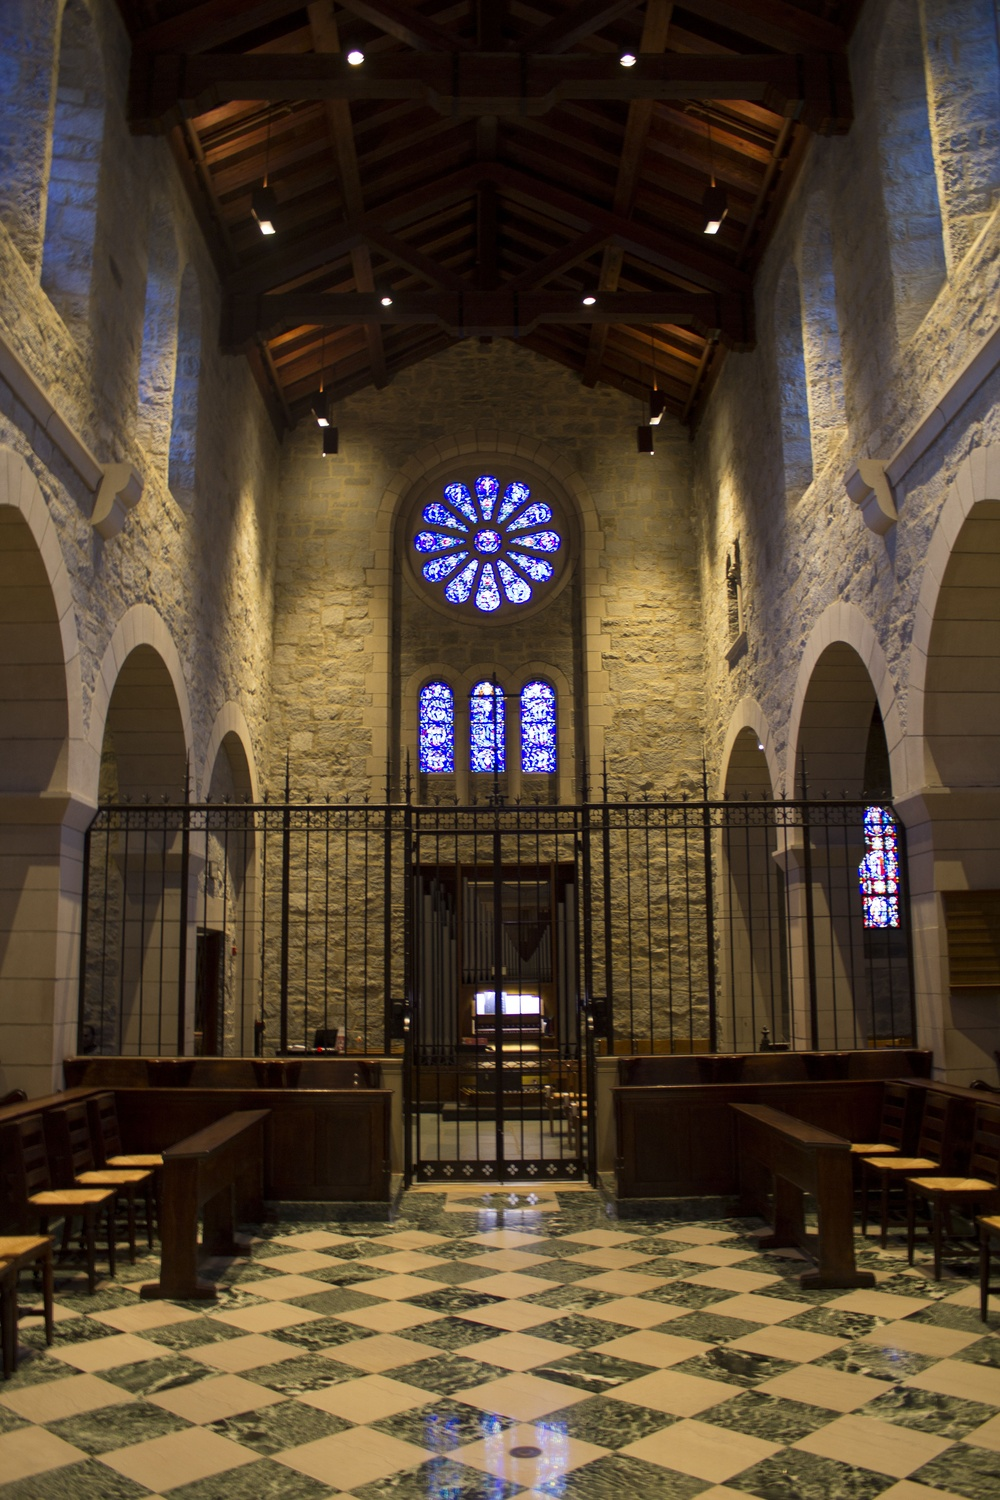 The monastery chapel of the Society of Saint John the Evangelist near Harvard Square is open to local residents for daily periods of quiet prayer.